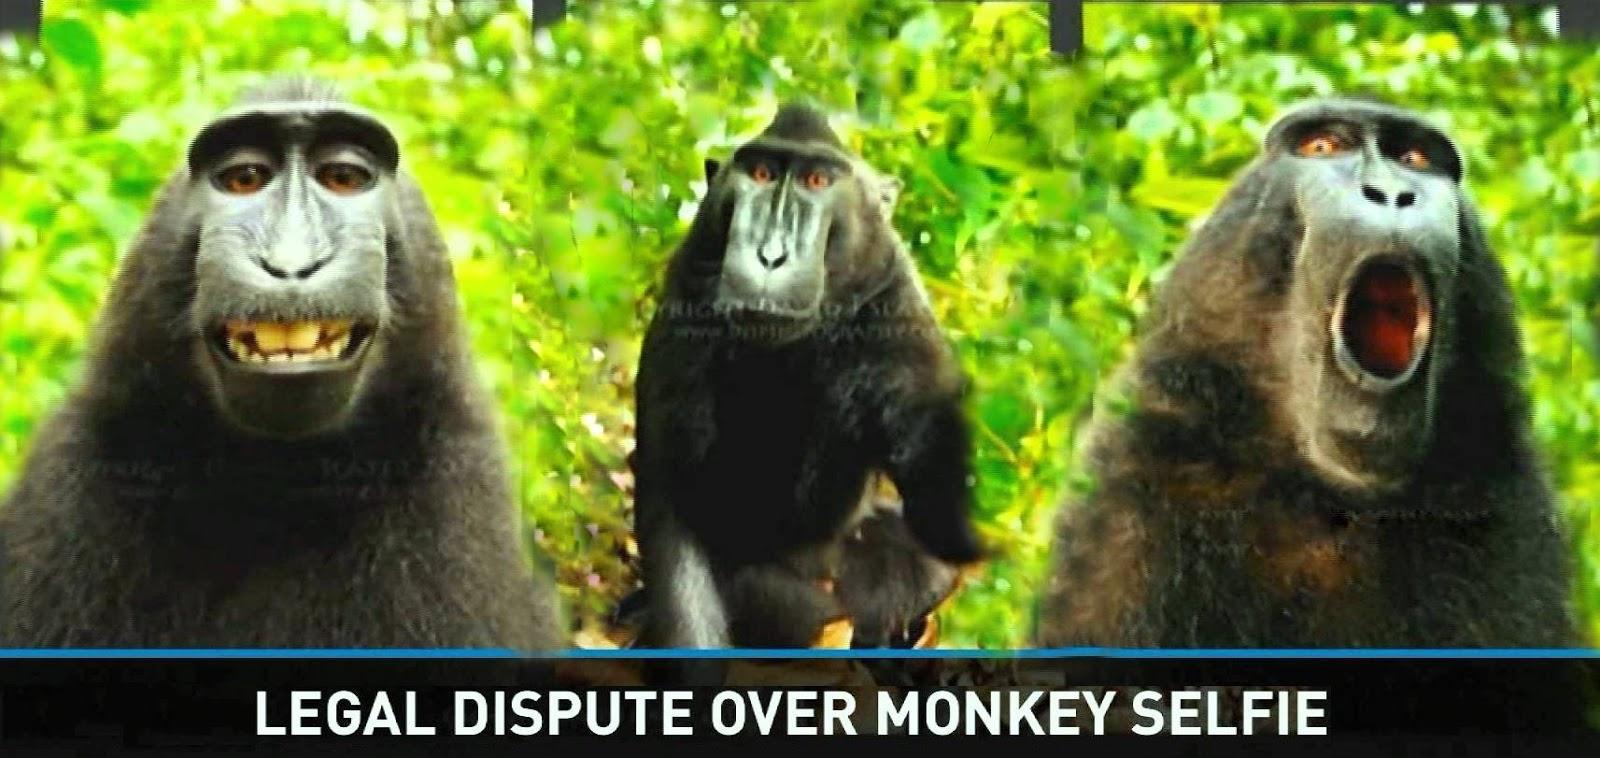 Monkey takes selfie, photographer sues for copyright infringement